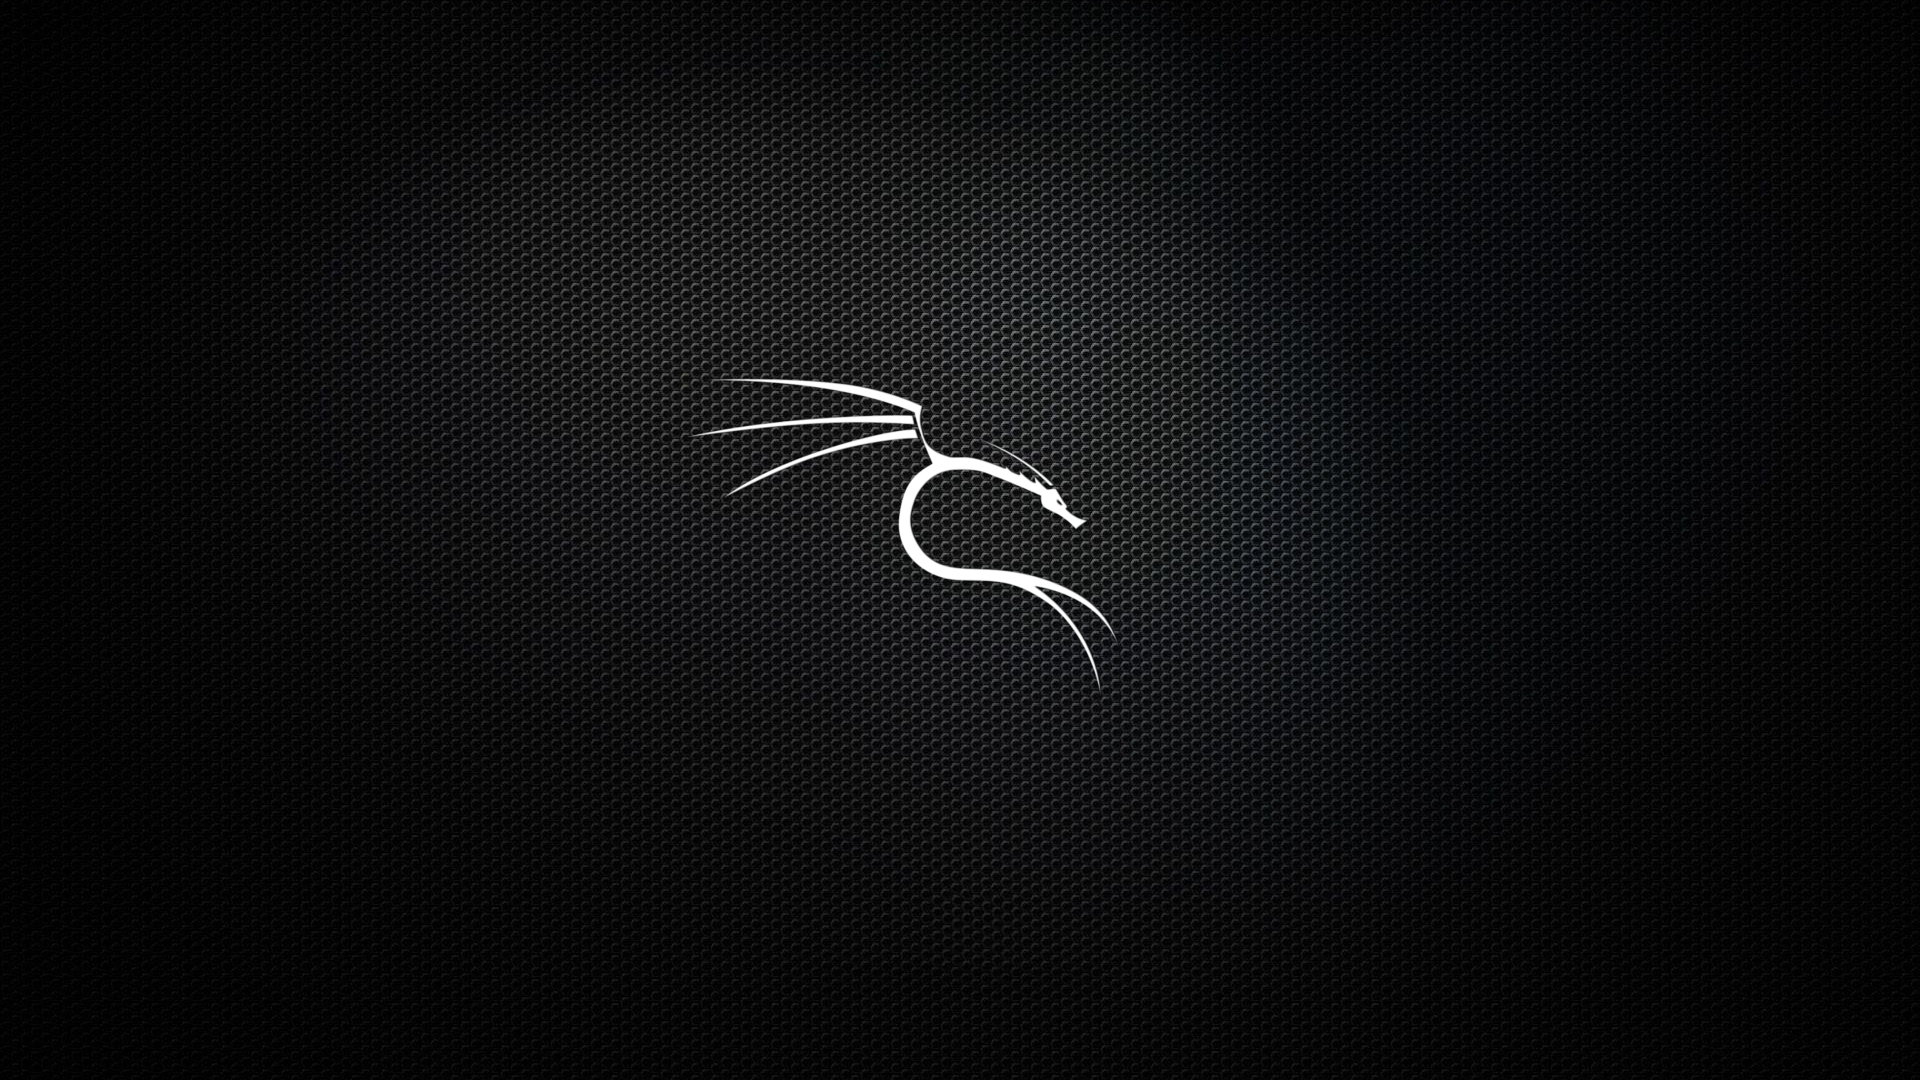 github - dorianpro/kali-linux-wallpapers: a set of dedicated kali